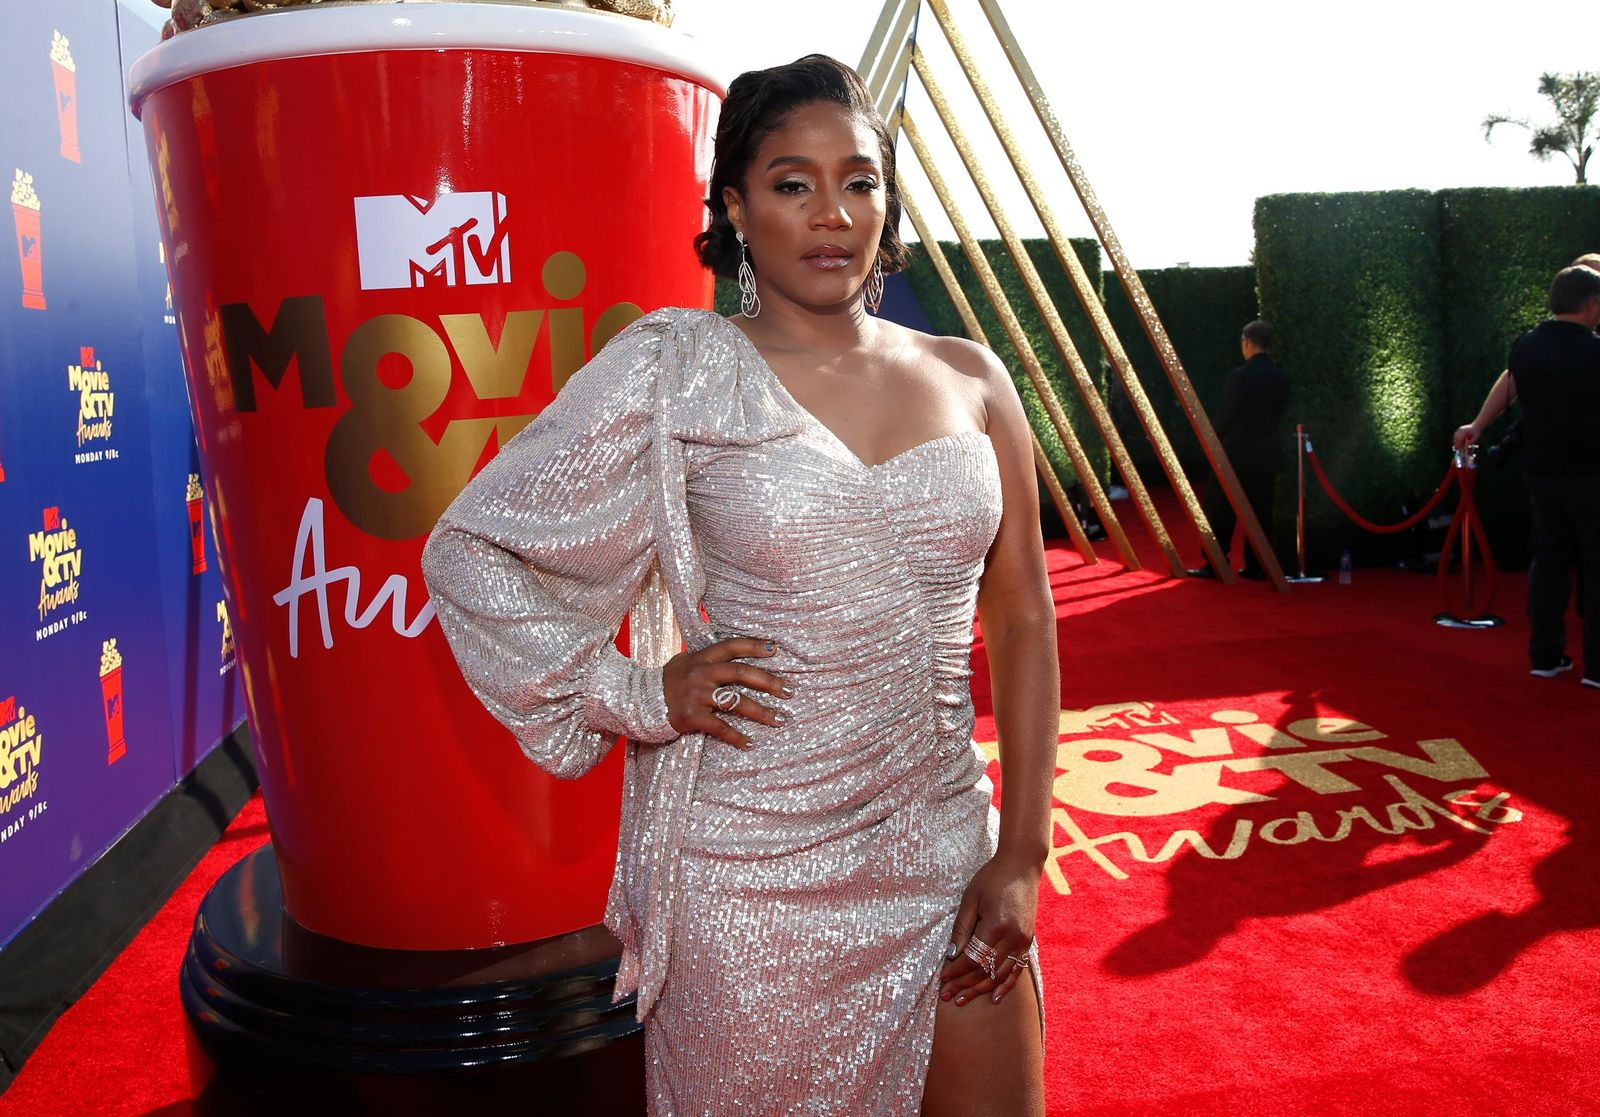 Tiffany Haddish arrives at the MTV Movie and TV Awards on Saturday, June 15, 2019, at the Barker Hangar in Santa Monica, Calif. (Photo by Danny Moloshok/Invision/AP)